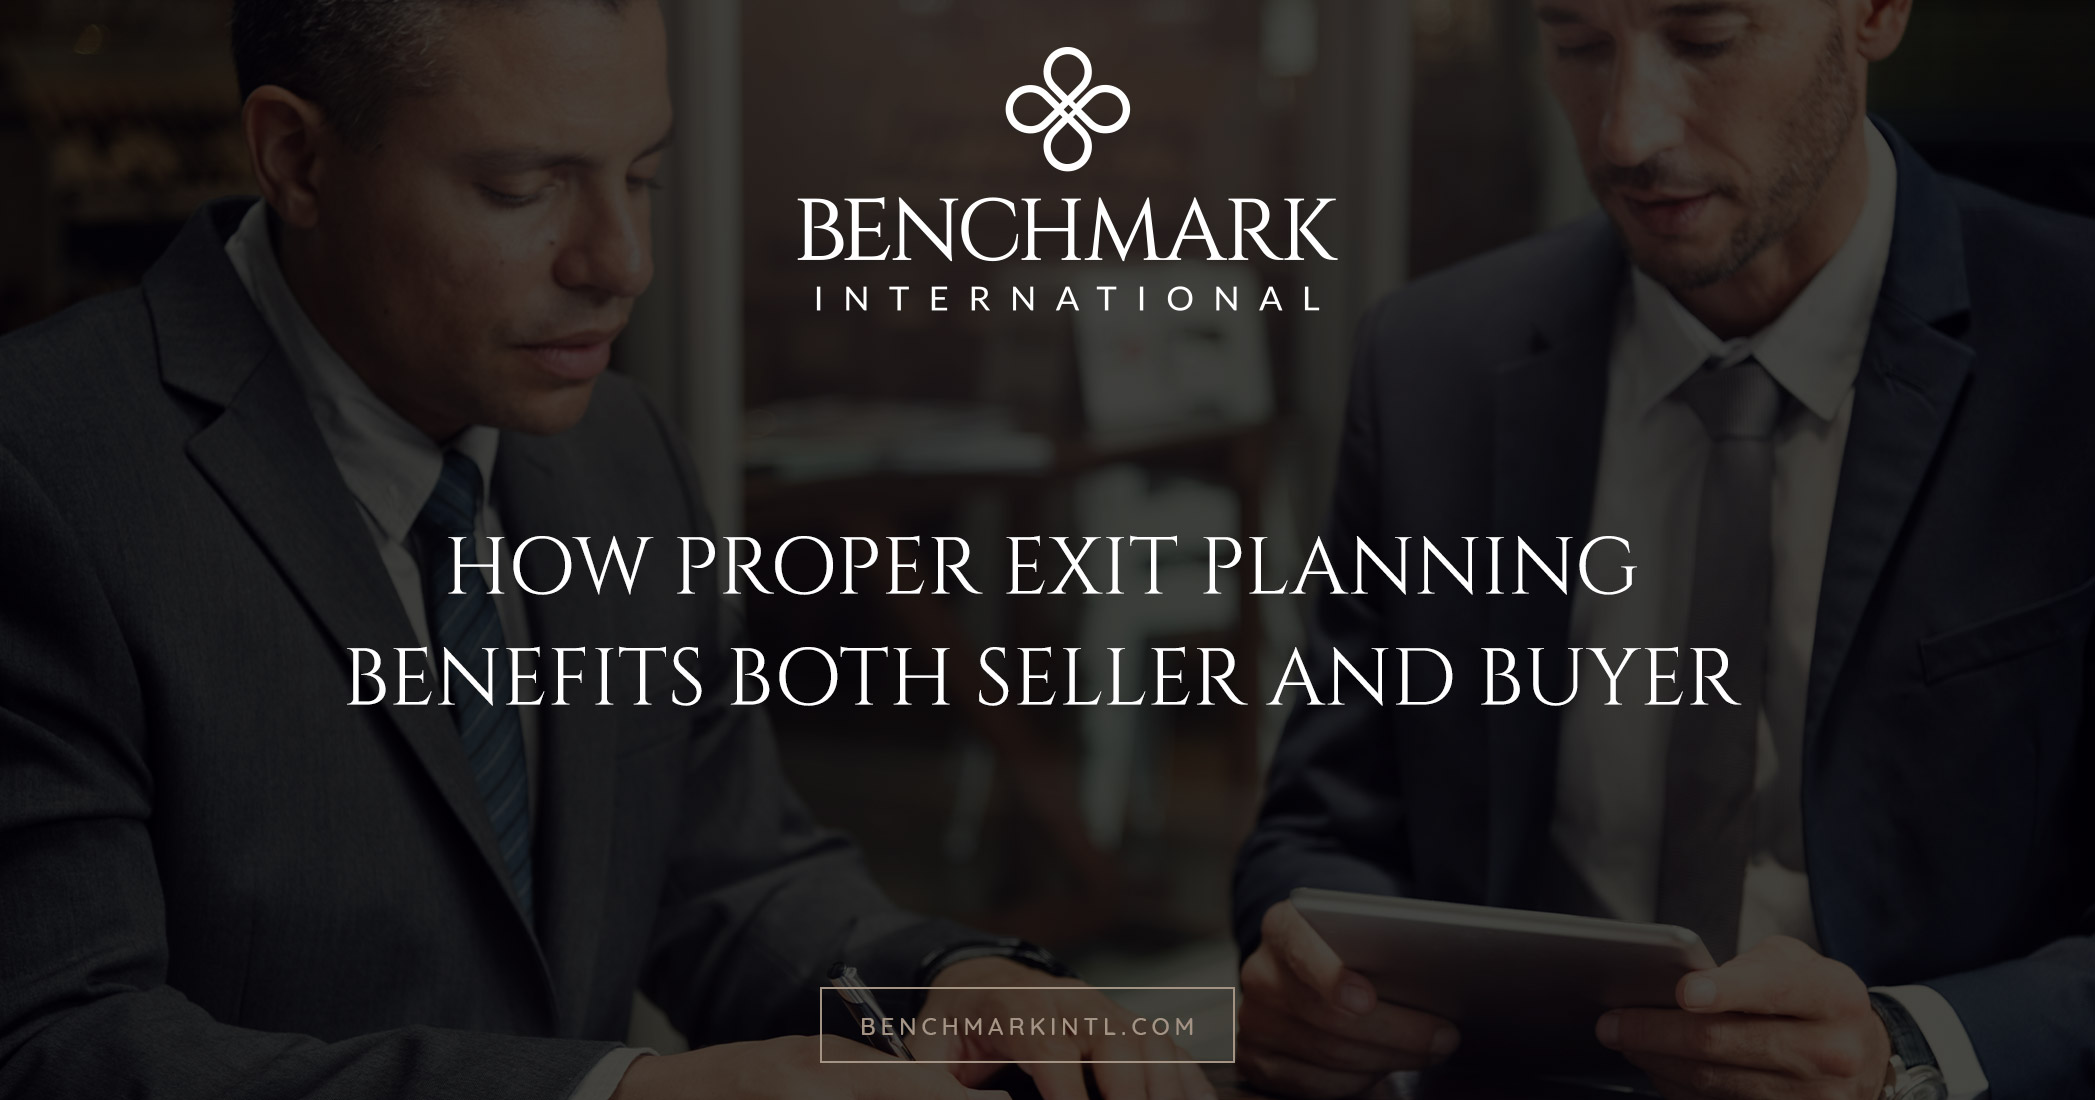 How Proper Exit Planning Benefits Both Seller and Buyer